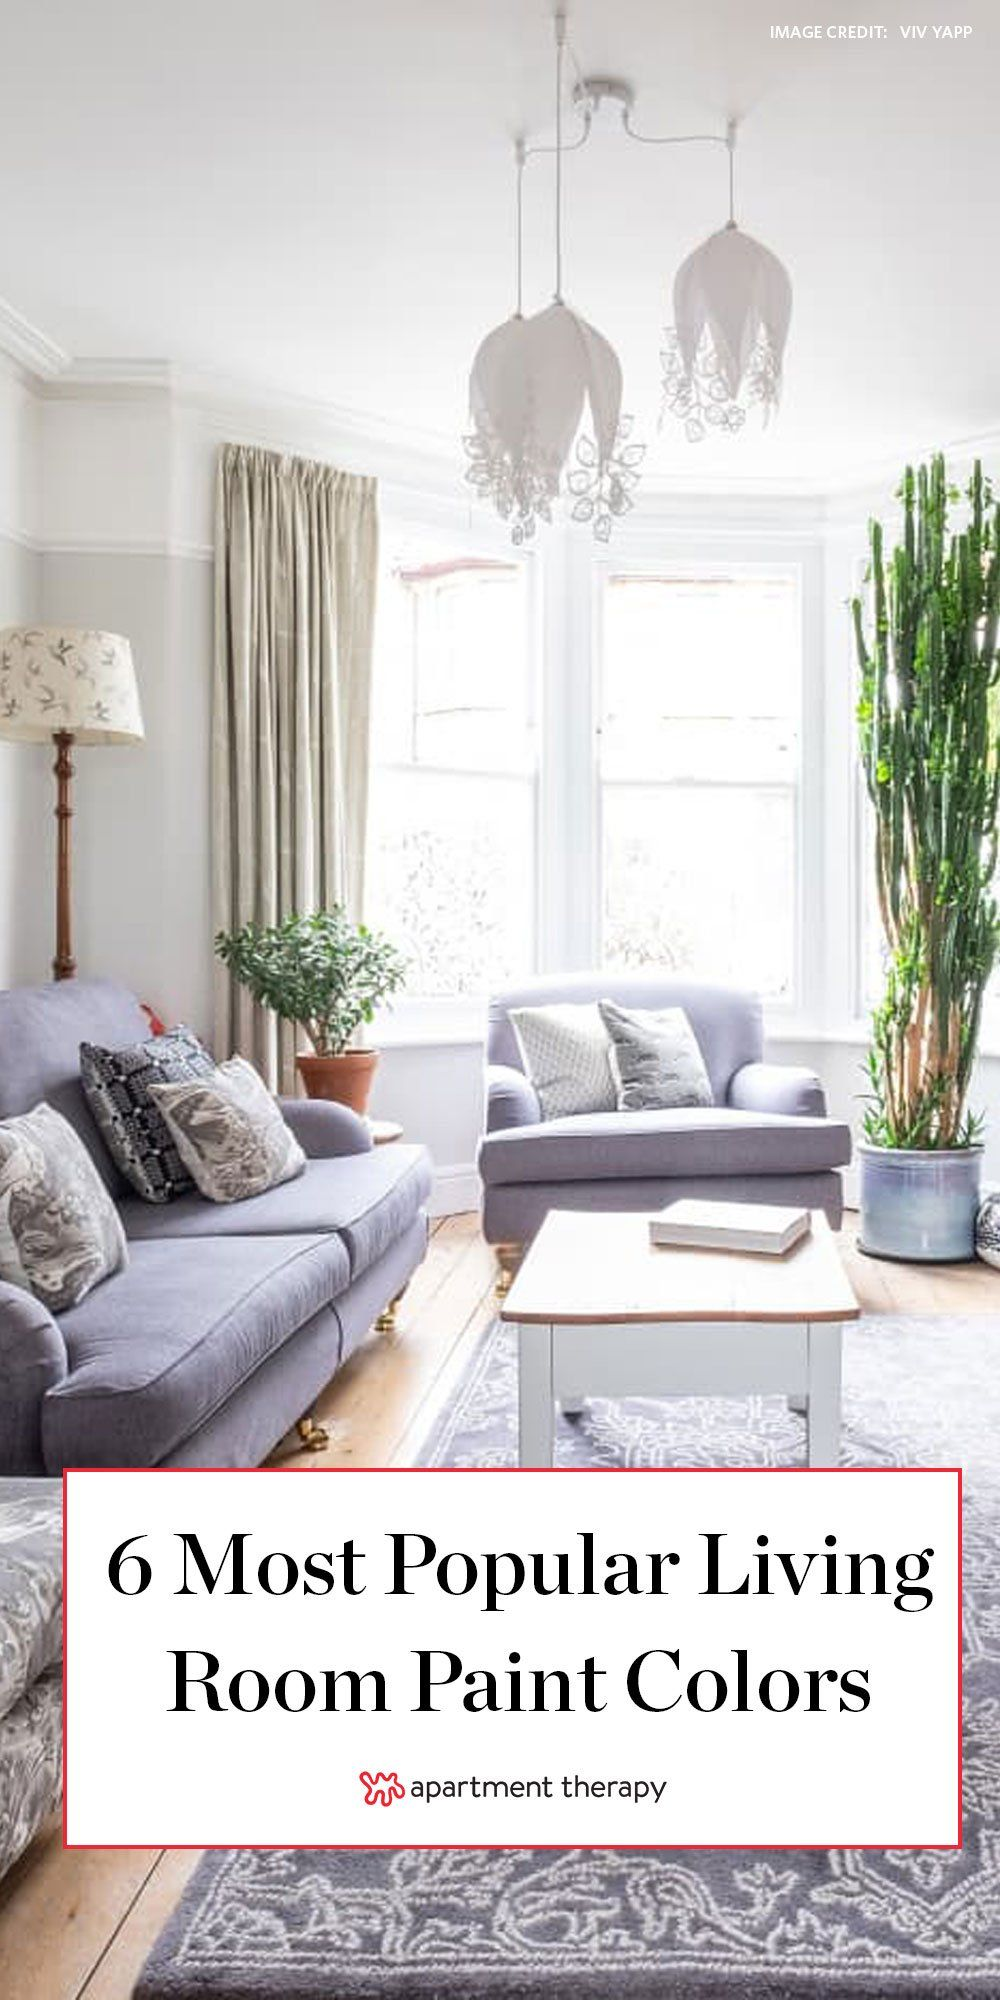 The Best Colors To Paint Your Living Room According To Real Estate Experts Choosing Living Room Colors Dining Room Colors Popular Living Room